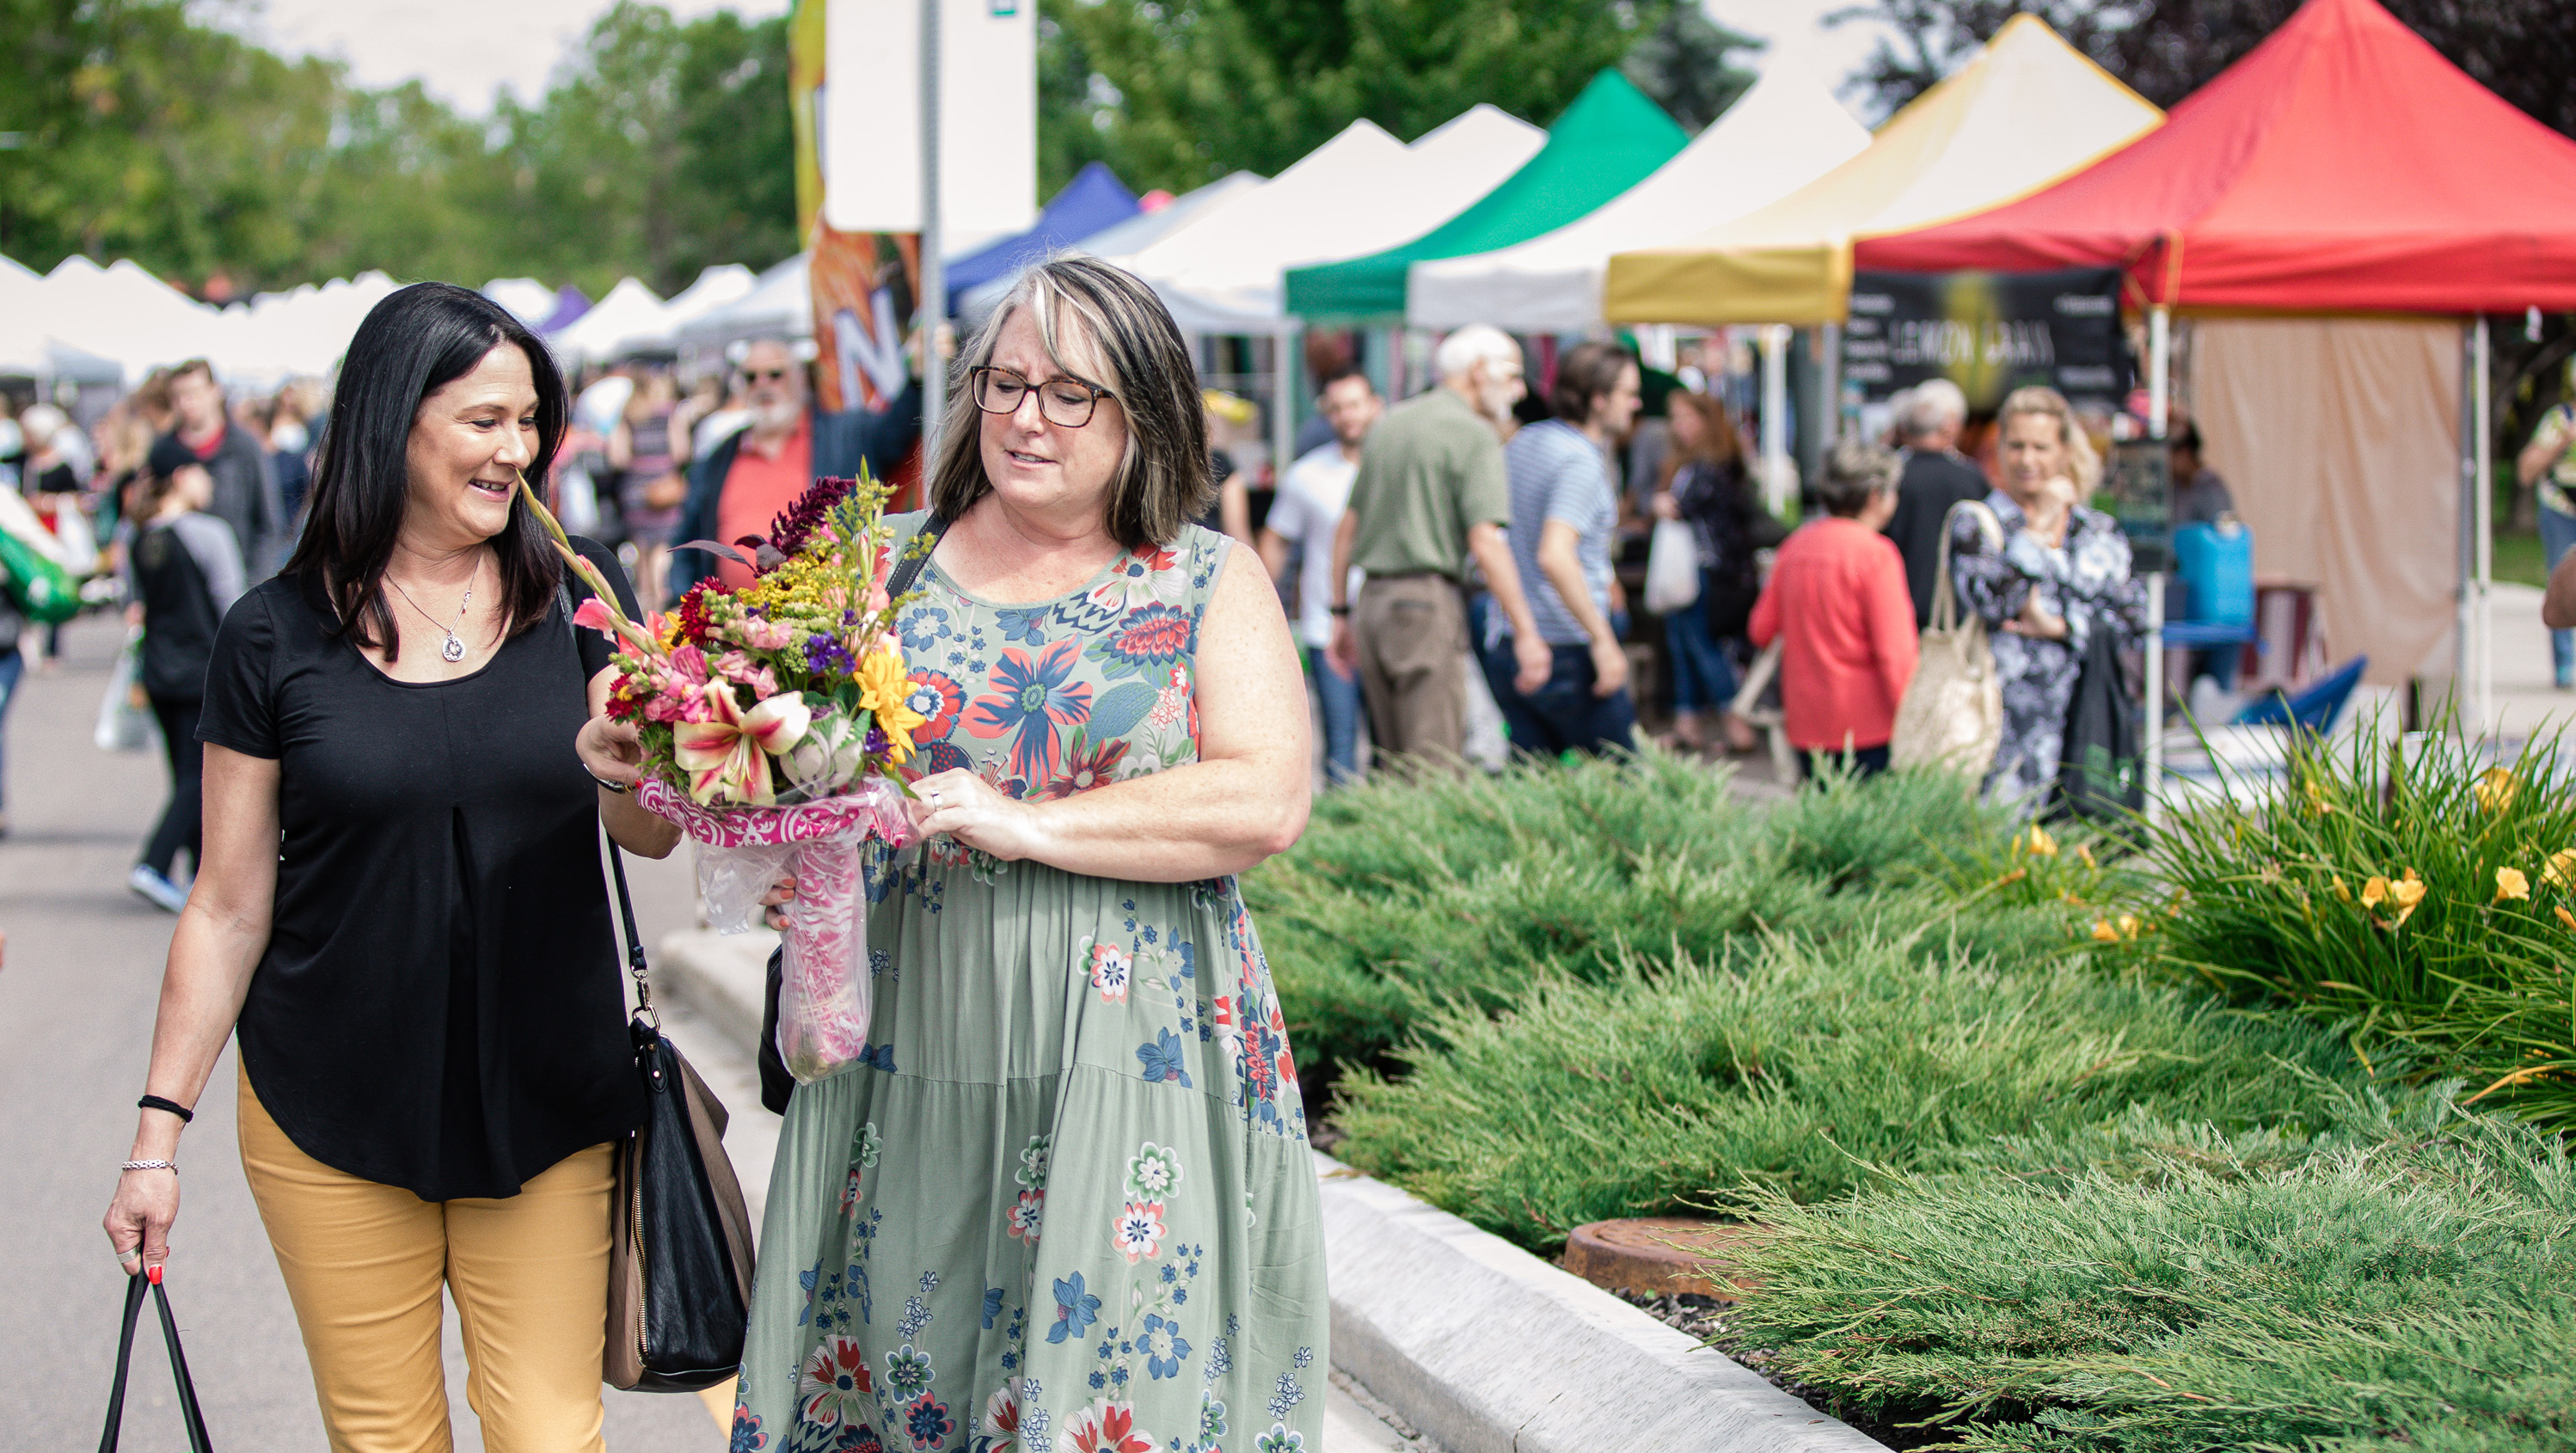 Customers enjoying St. Albert's thriving Farmer's Market